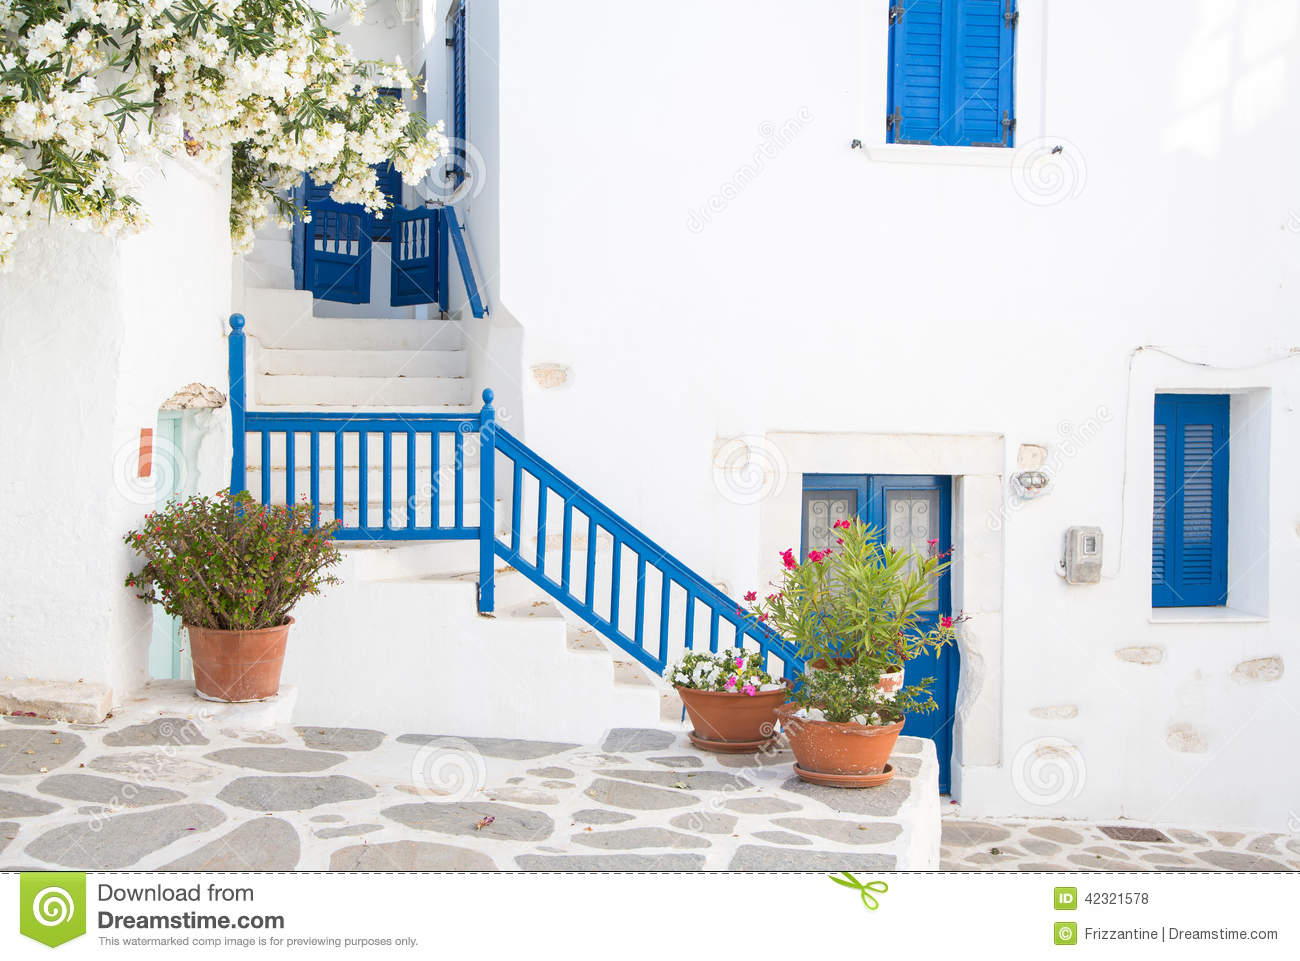 Architecture On The Cyclades. Greek Island Buildings With Her Ty.